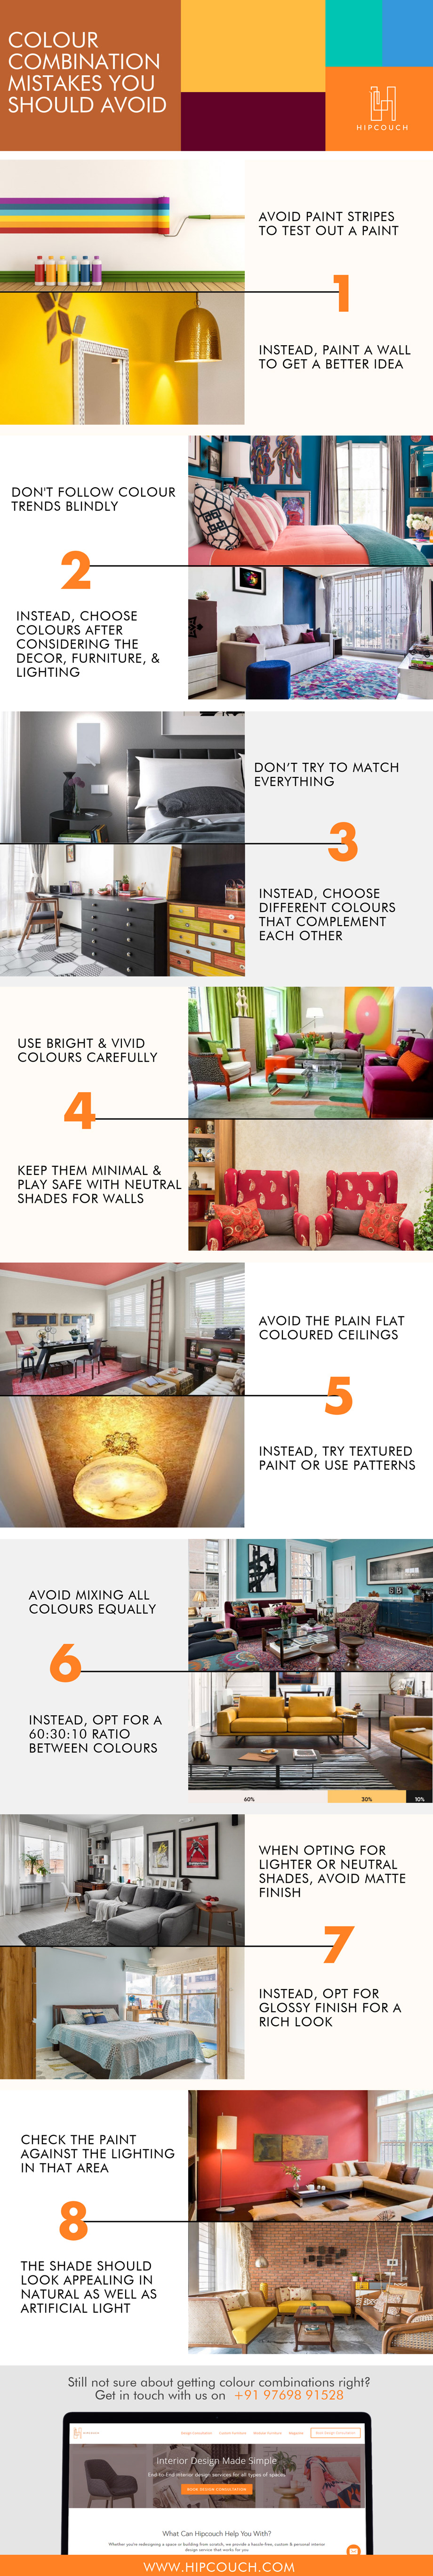 Colour Combination Mistakes That You Should Avoid!